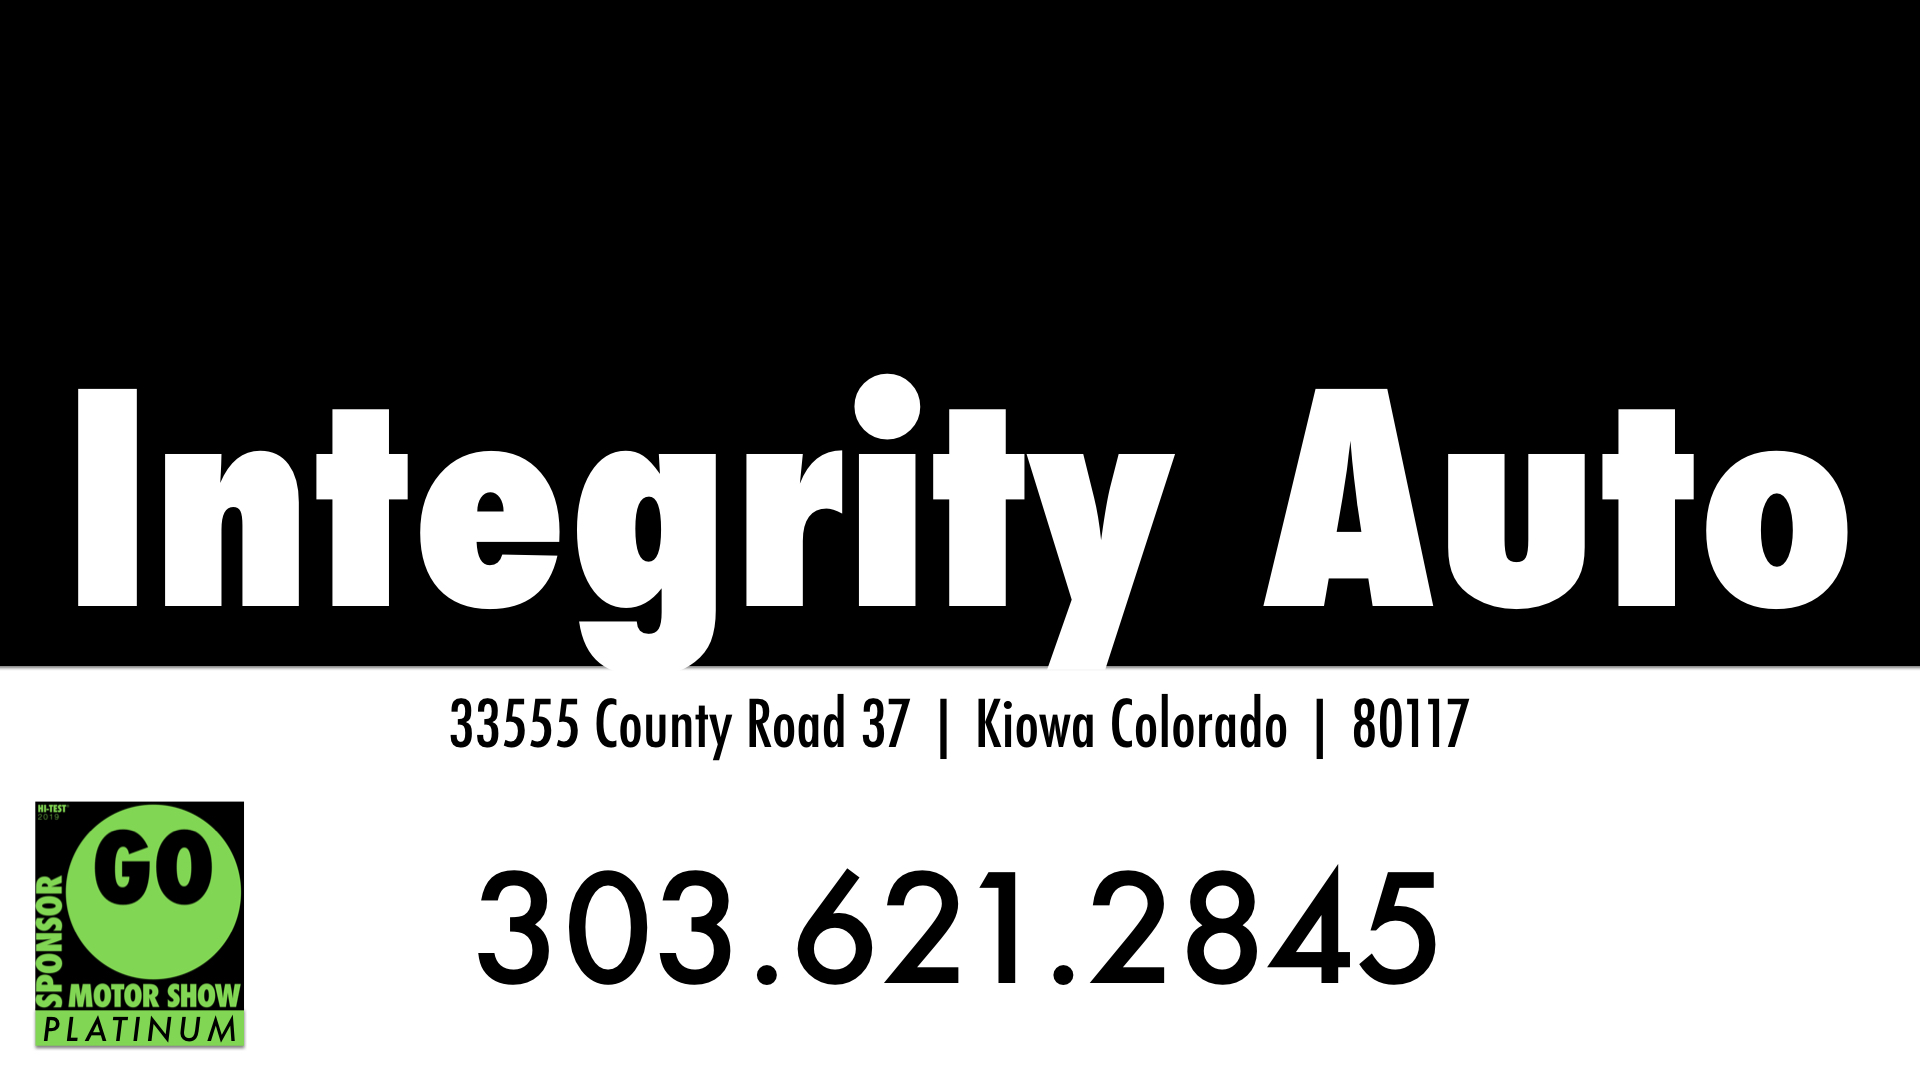 Integrity Auto Repair Inc.